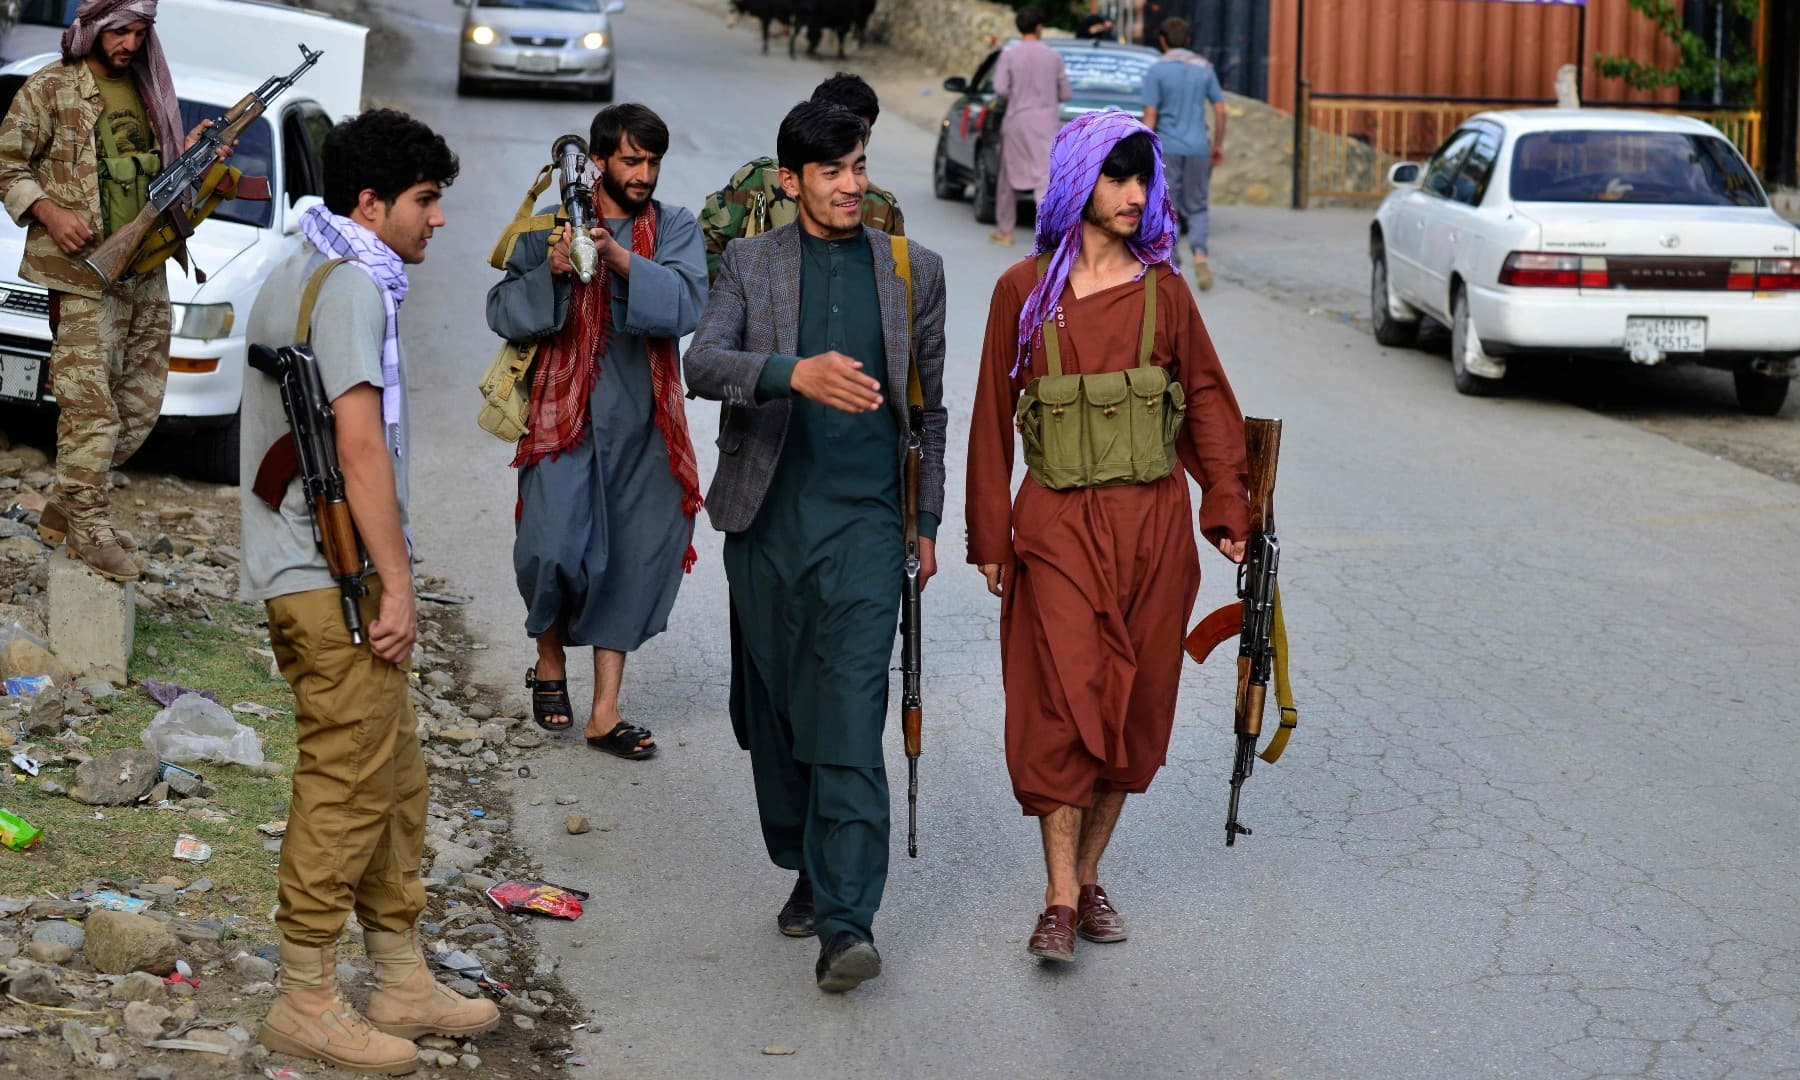 Armed men, supporting the Afghan security forces against the Taliban, walk along a road in Bazarak, Panjshir province, on August 18. — AFP